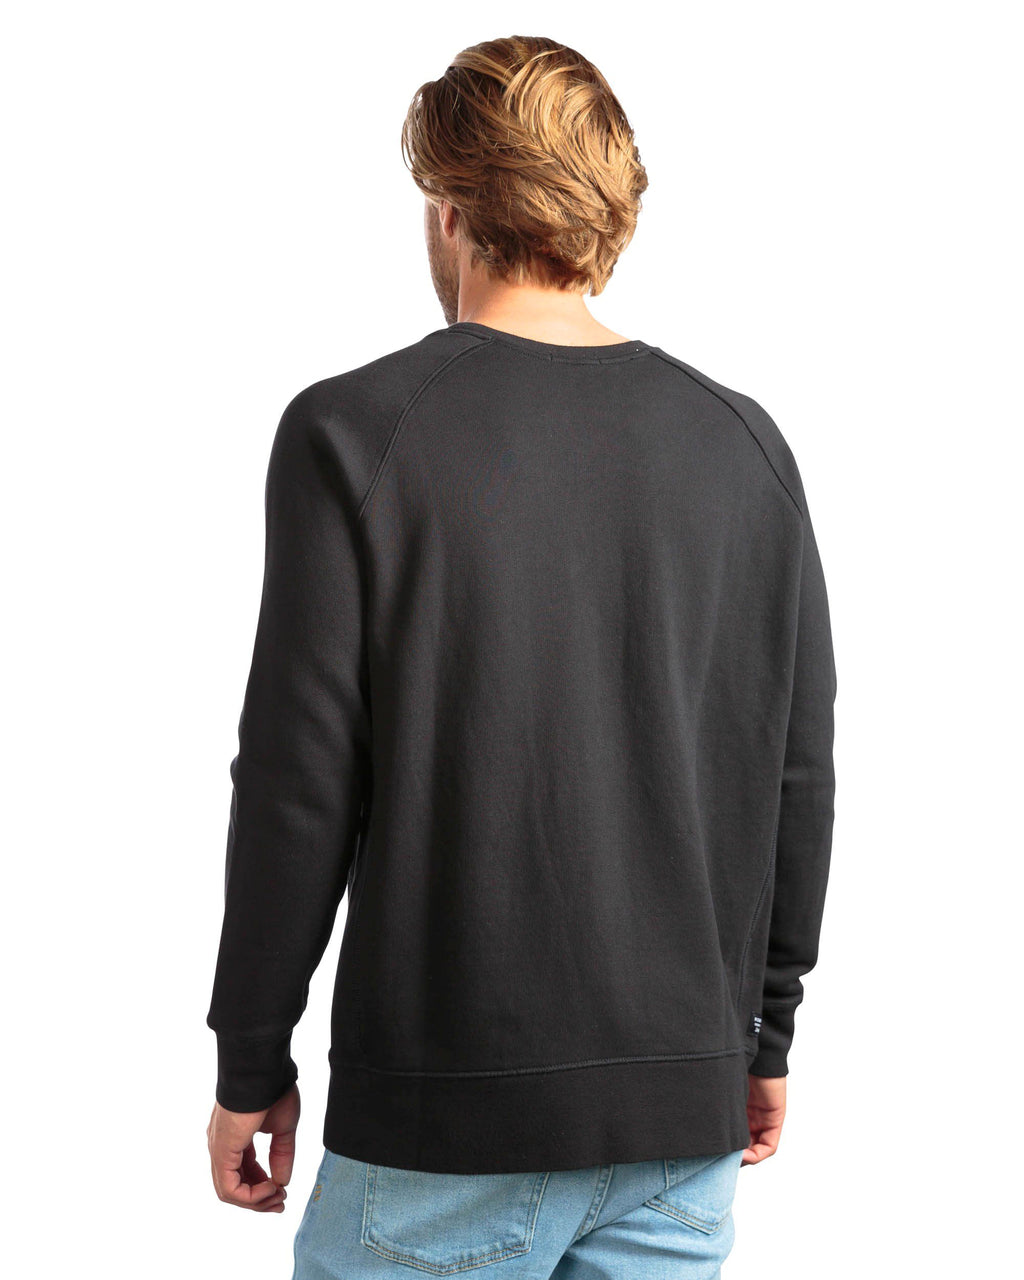 RICHER POORER Crew Sweatshirt Men | Black (MAT-SSCR01) (XL)